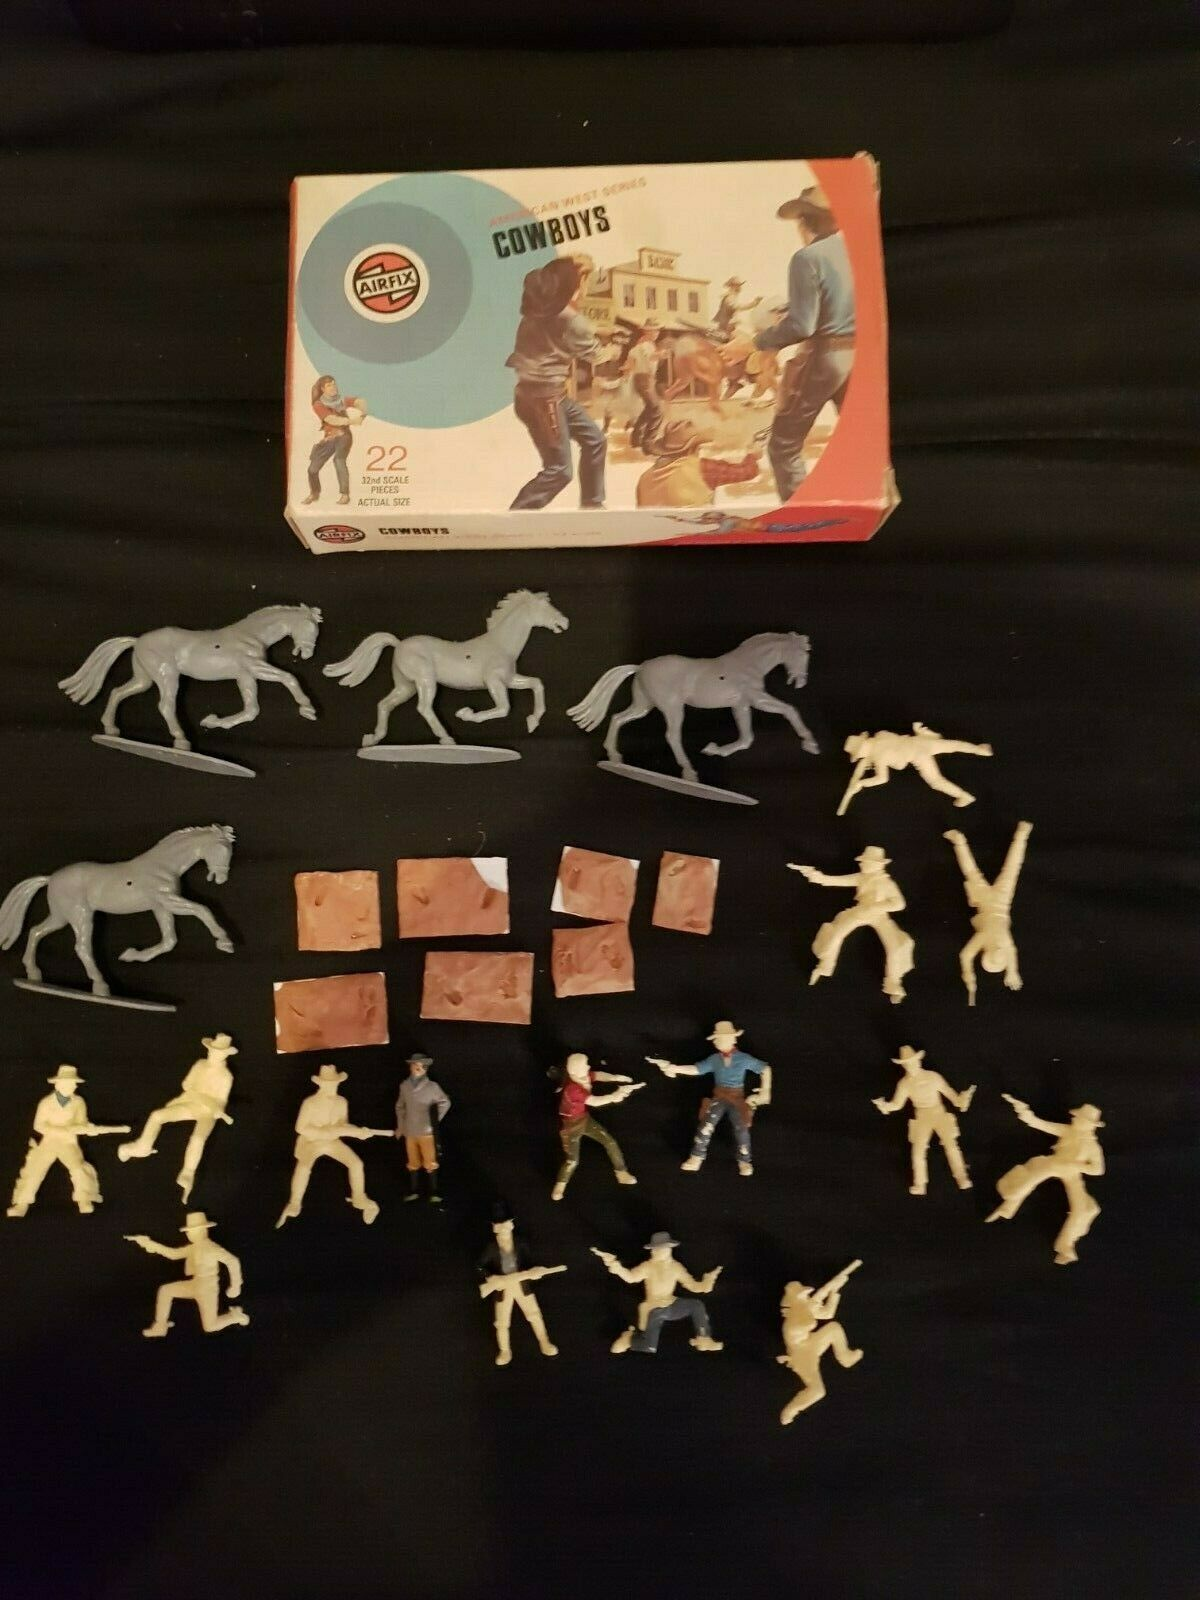 VINTAGE AIRFIX AMERICAN WEST SERIES COWBOYS SCALE 1 32 BOXED 1974, INCOMPLETE